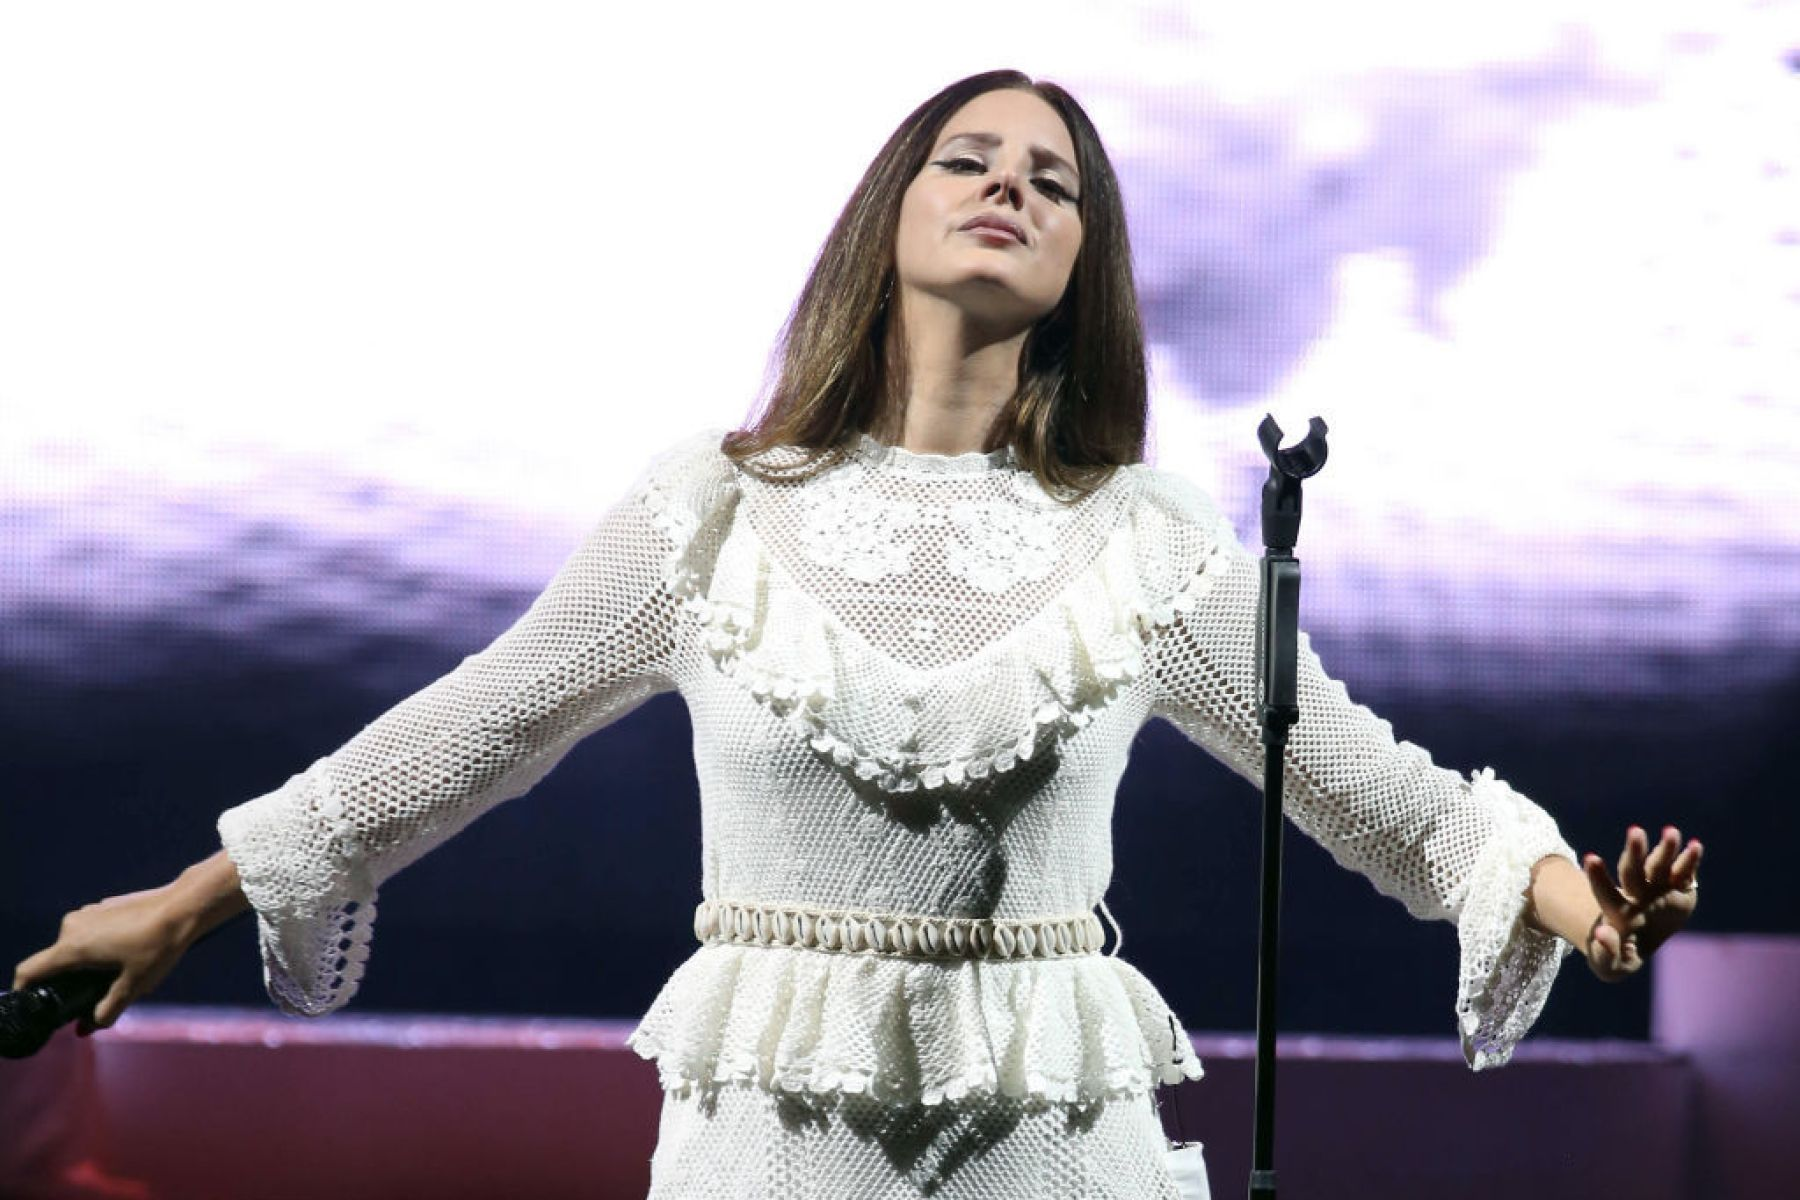 Lana Del Rey Captivates At Norman Rockwell Tour Opening New York Show Rolling Stone